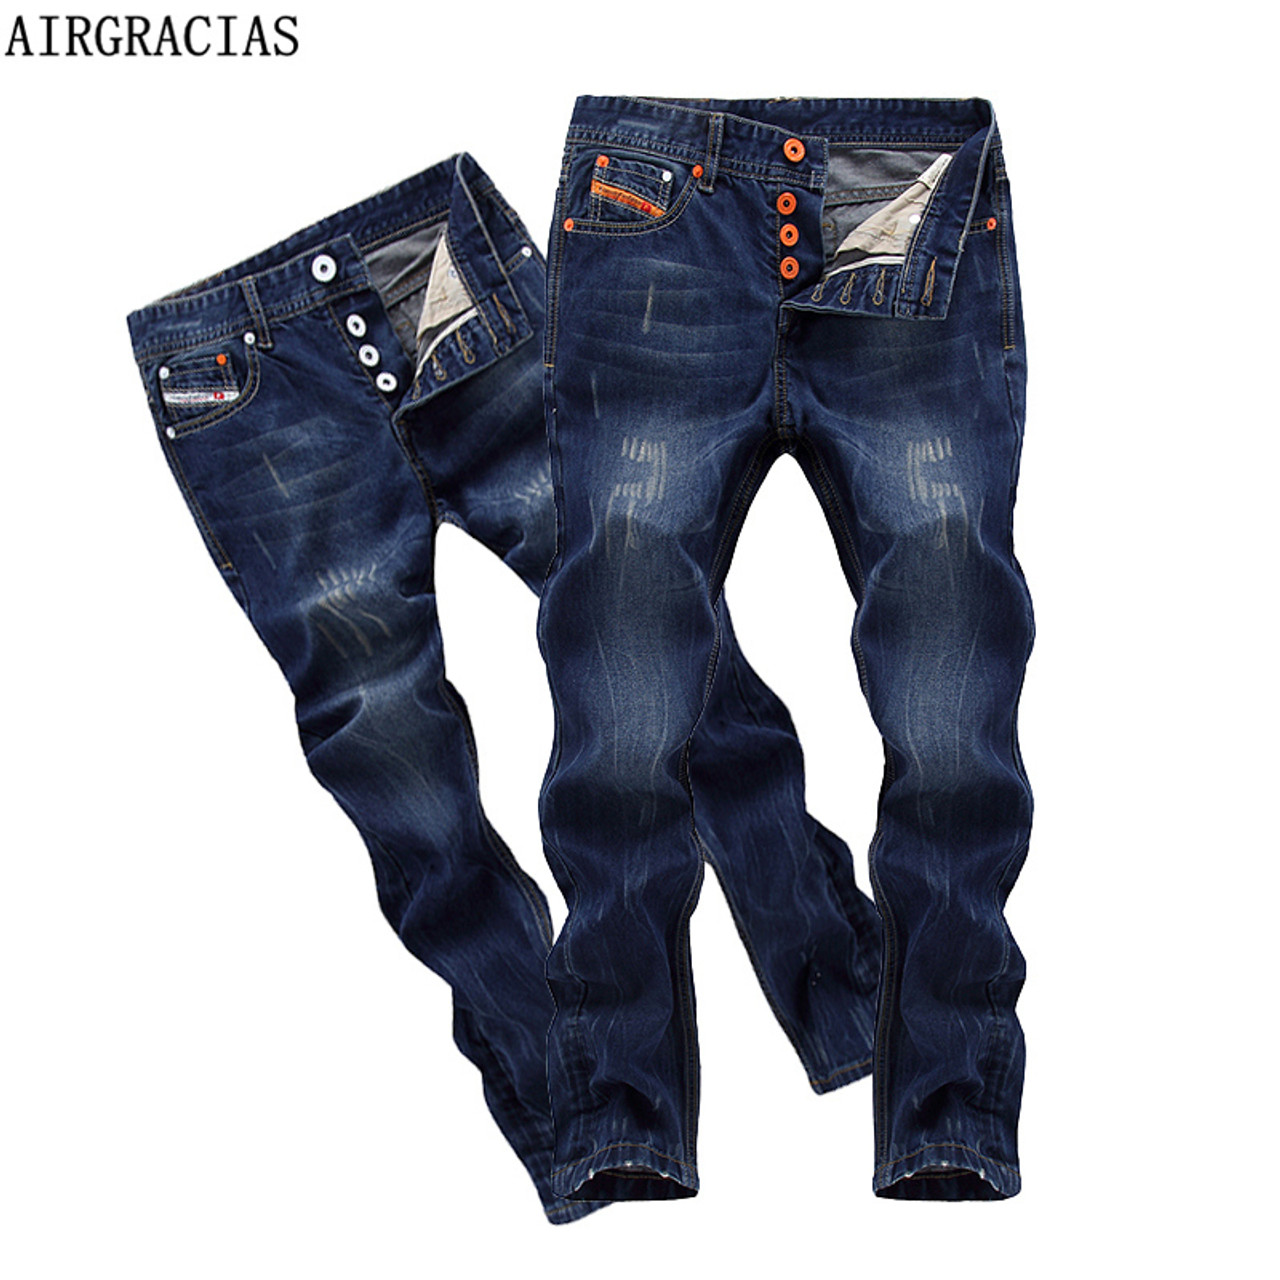 0ac98e5f4e113a AIRGRACIAS Brand High Quality Style Brand Mens Jeans Dark Color Cotton  Ripped Jeans For Men Fashion Designer Biker Jean - OnshopDeals.Com